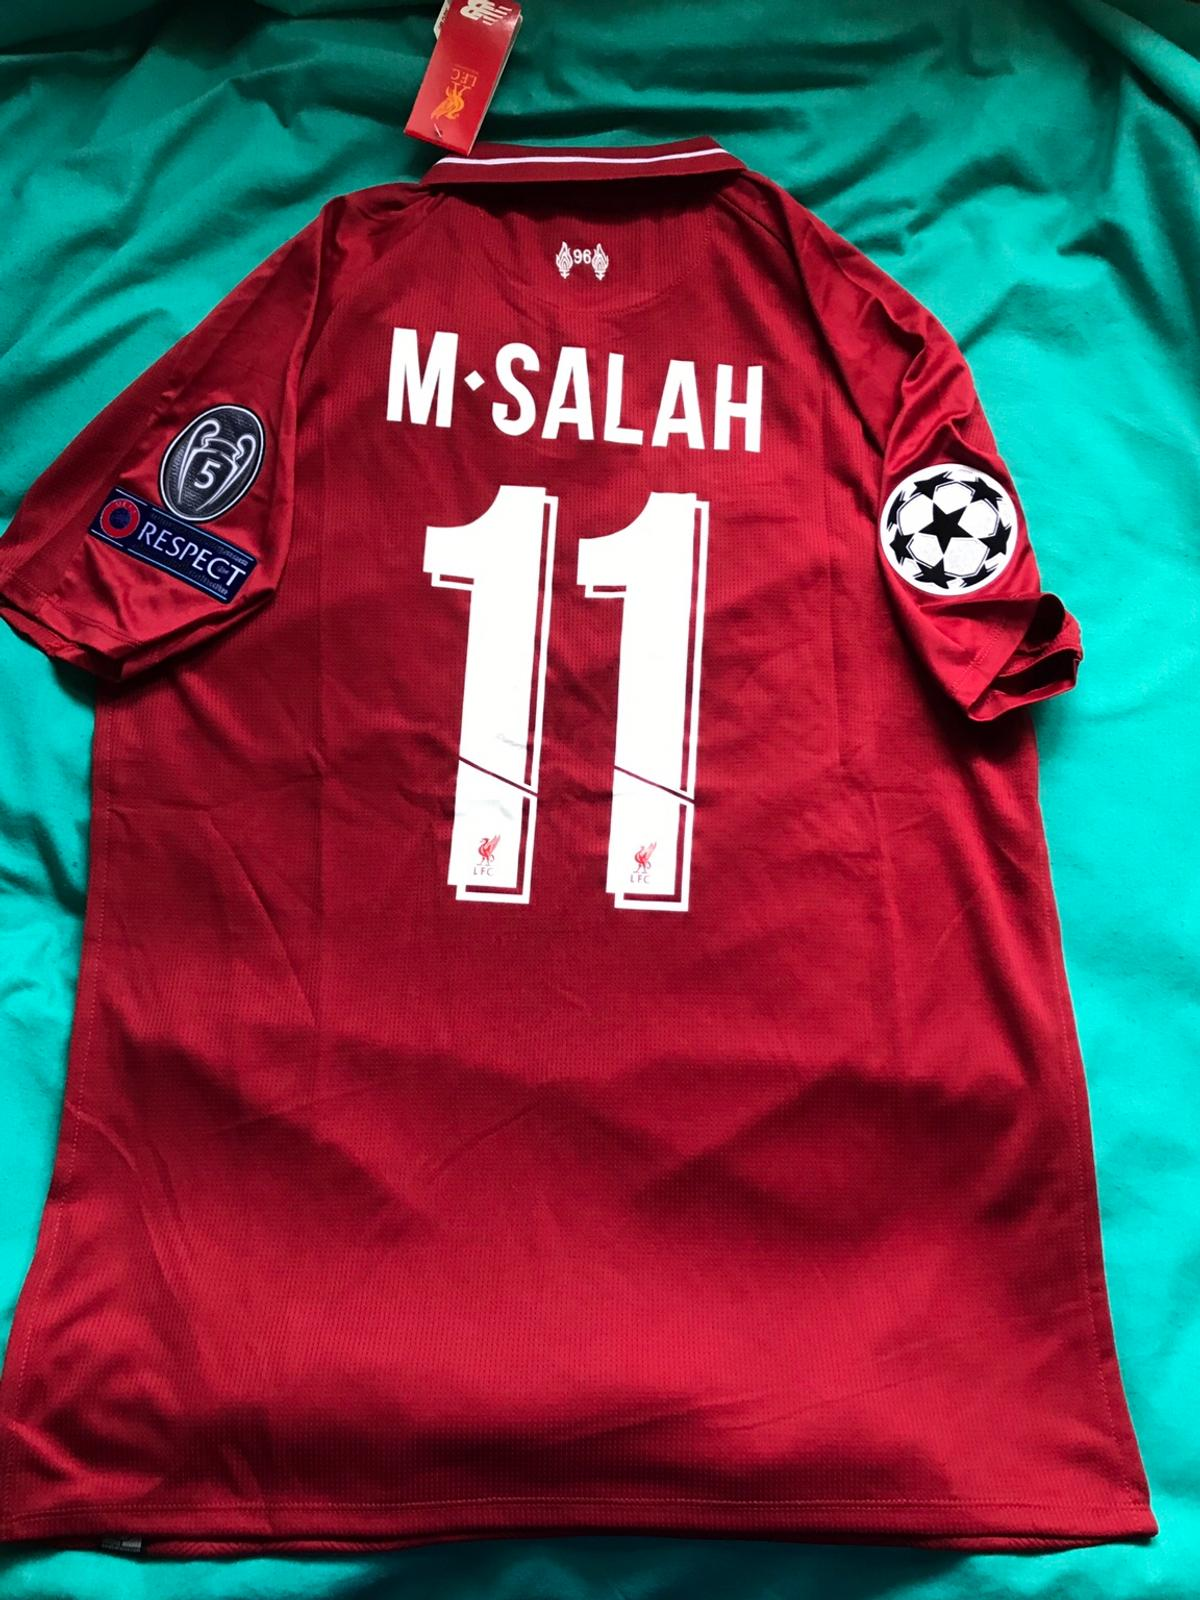 hot sale online ce7f9 f347e New liverpool shirt m Salah 11 2019 with tags